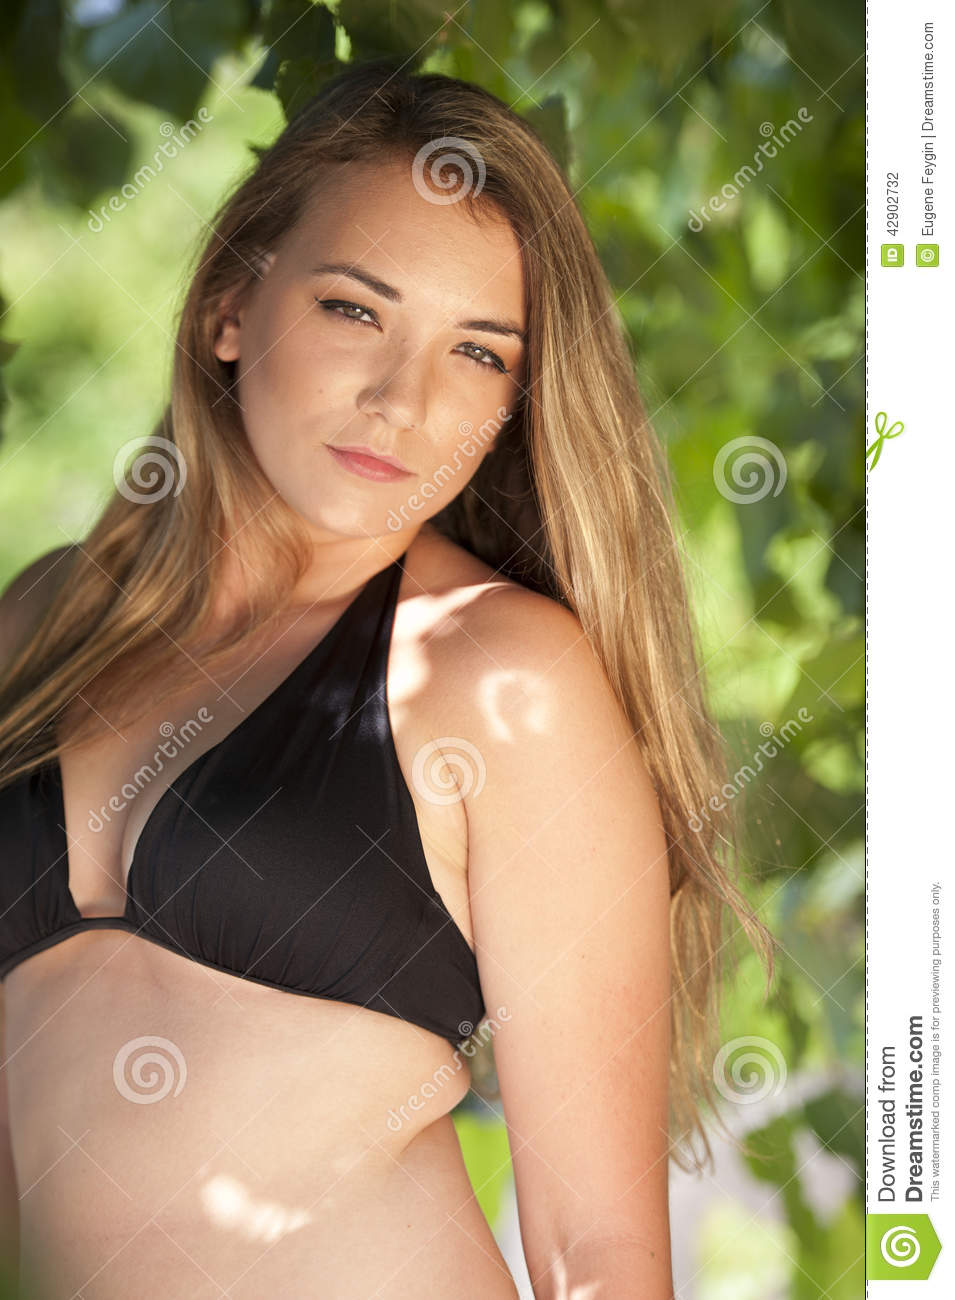 Swimsuit model pictures porn only reserve